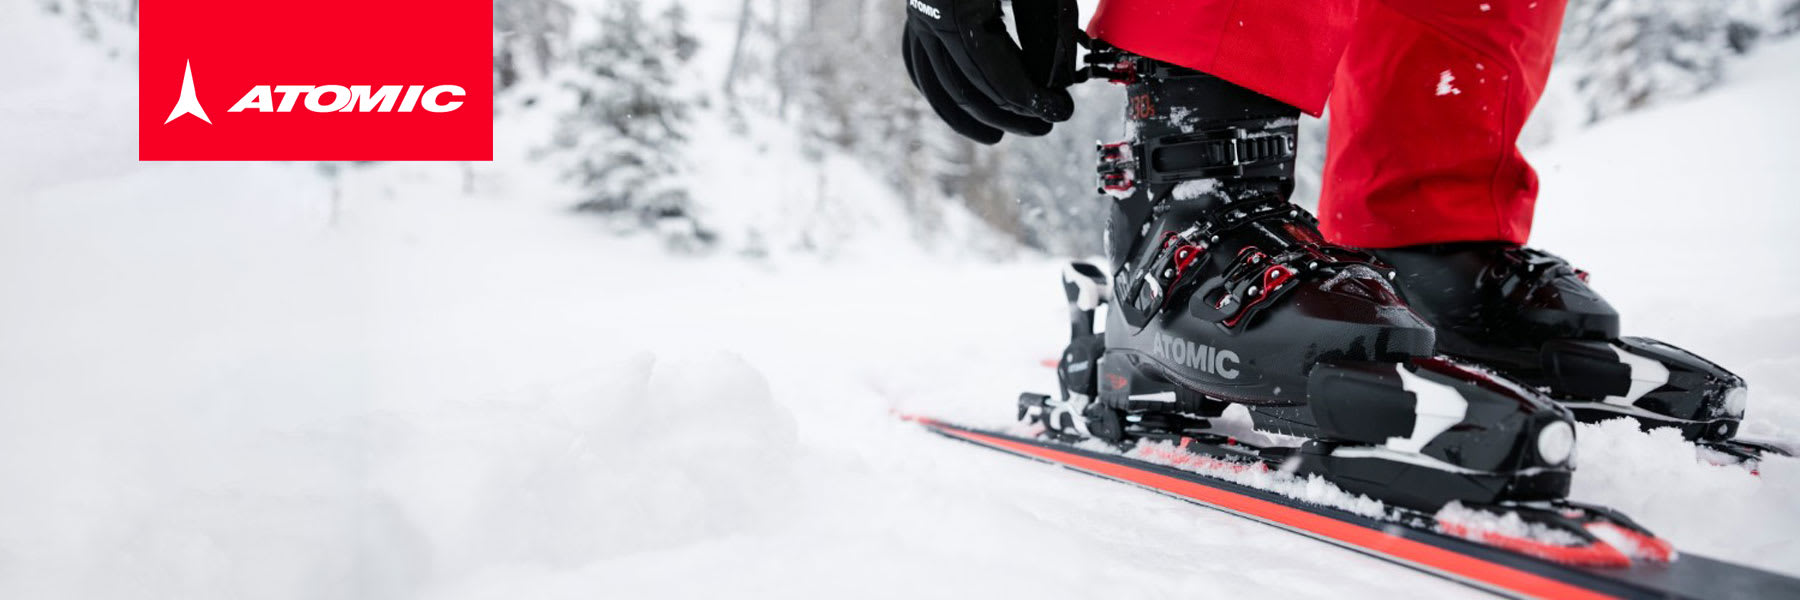 Atomic Snowboards, Snowboard Bindings